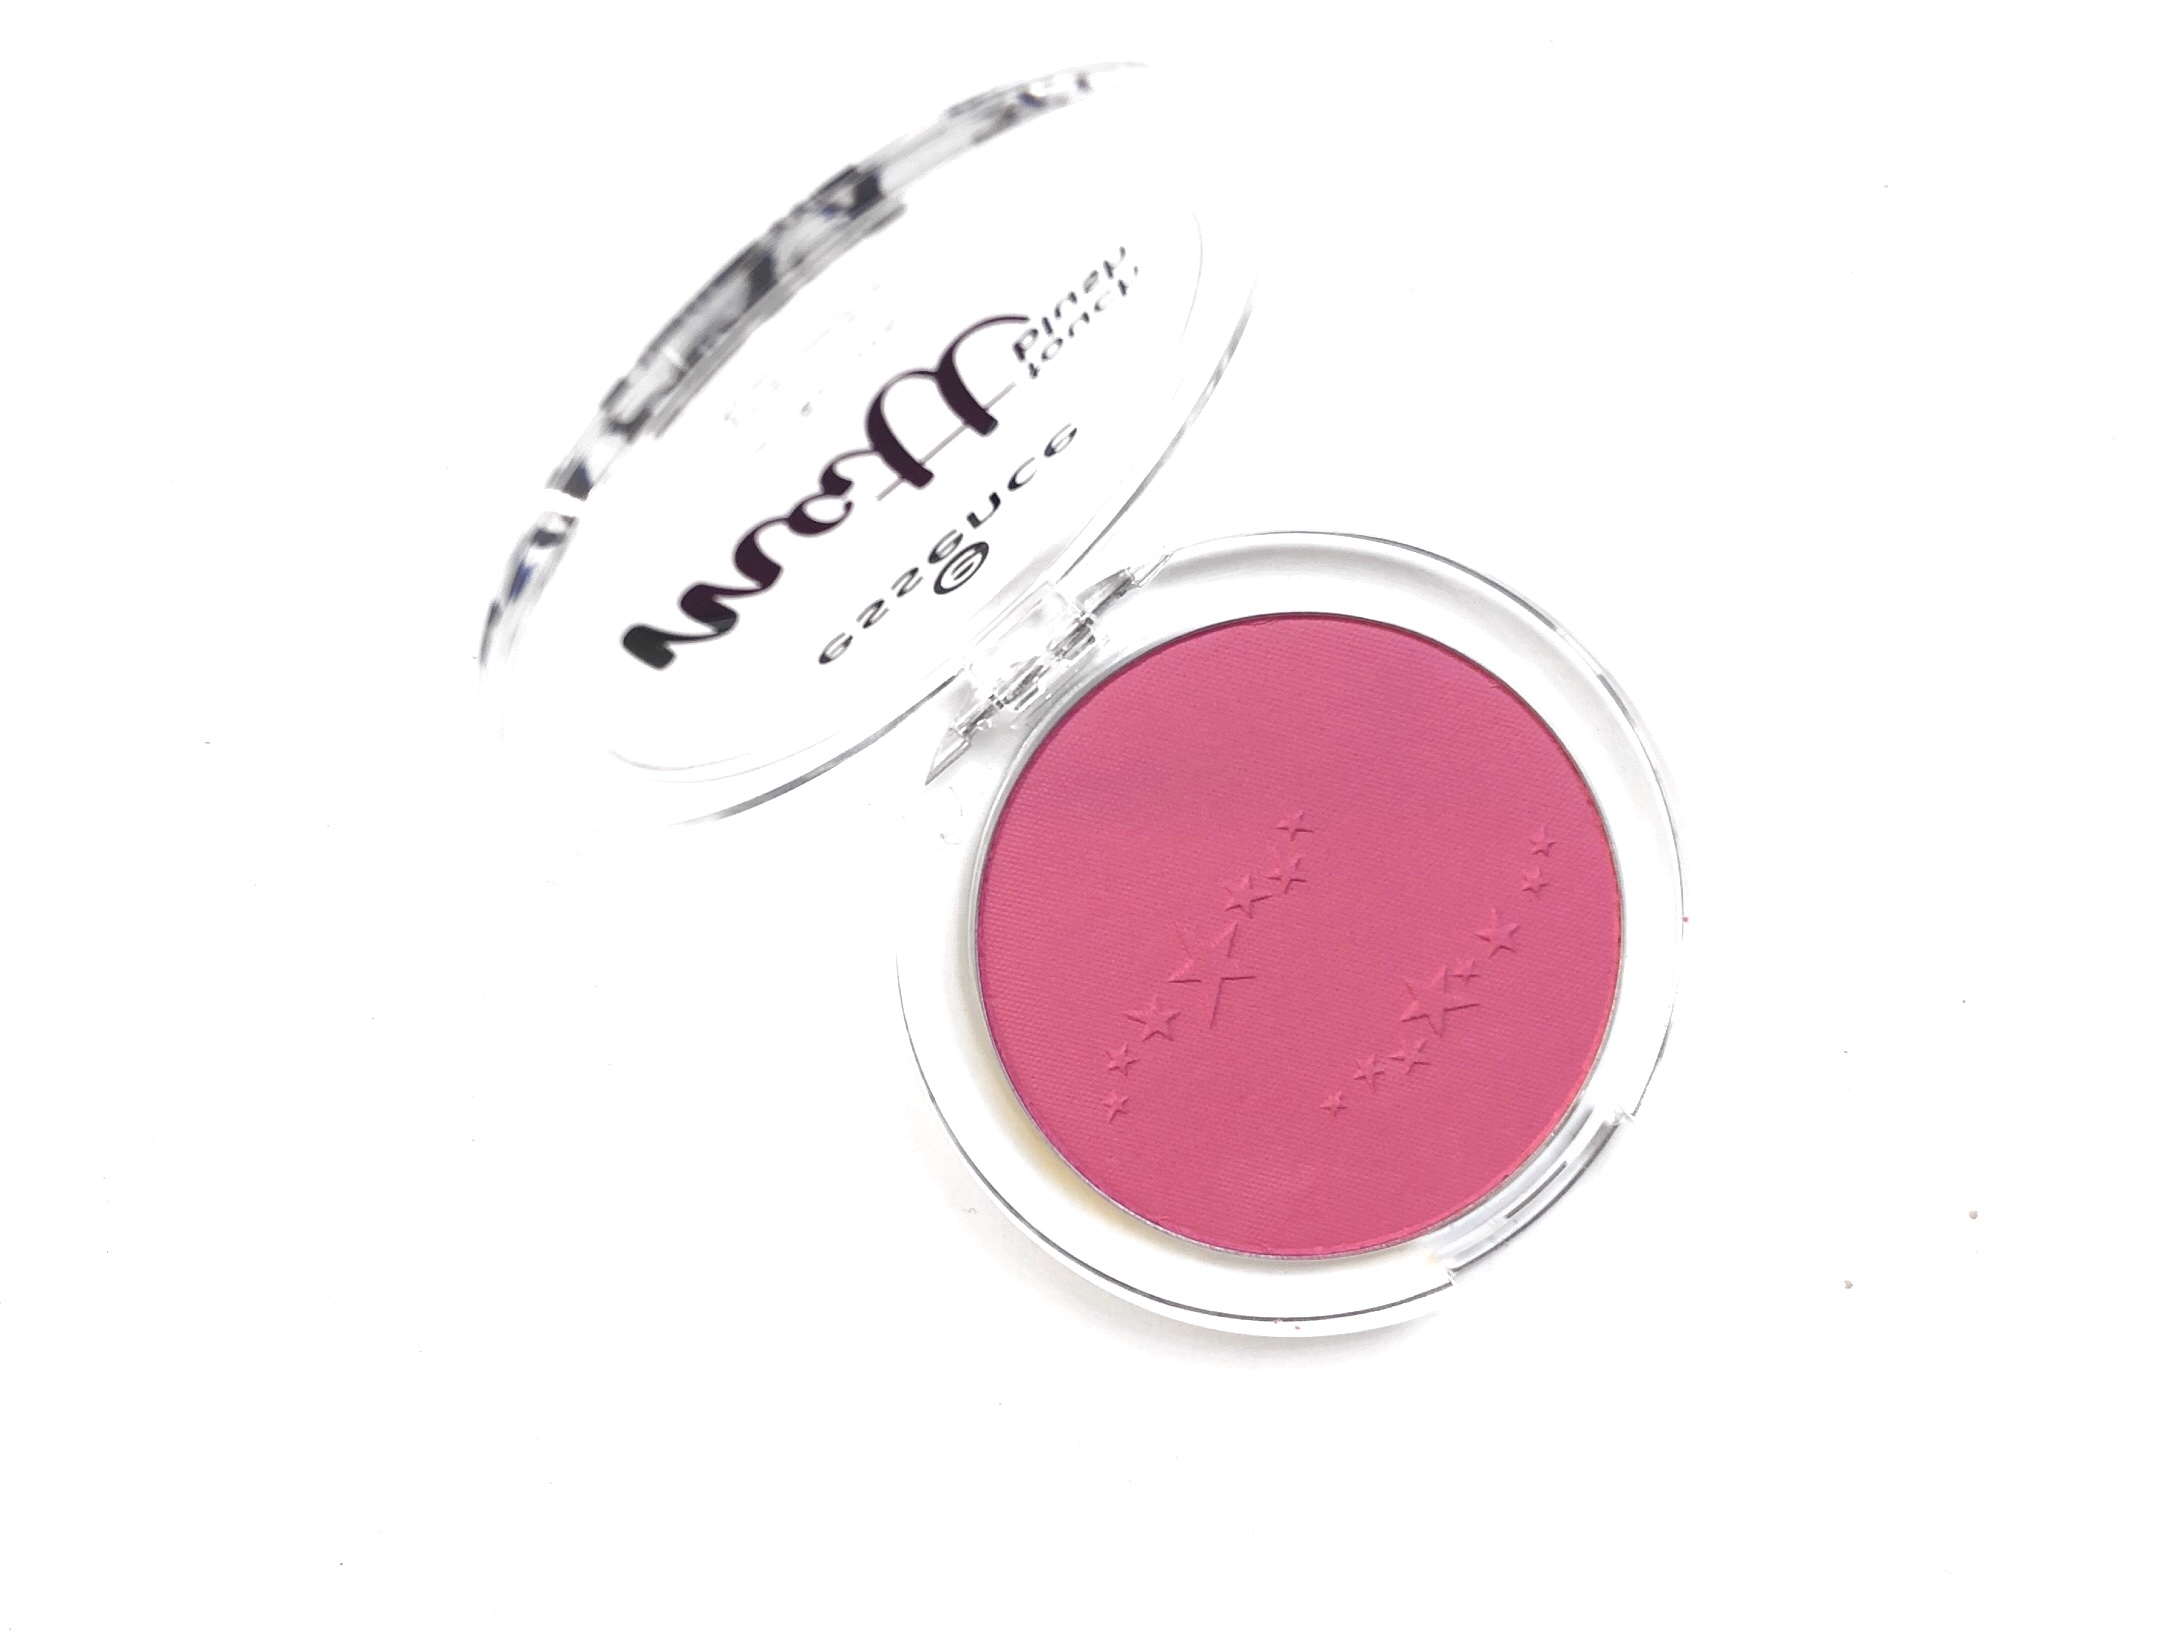 Essence 50 Pink Me Up! Matt Touch Blush Review 2